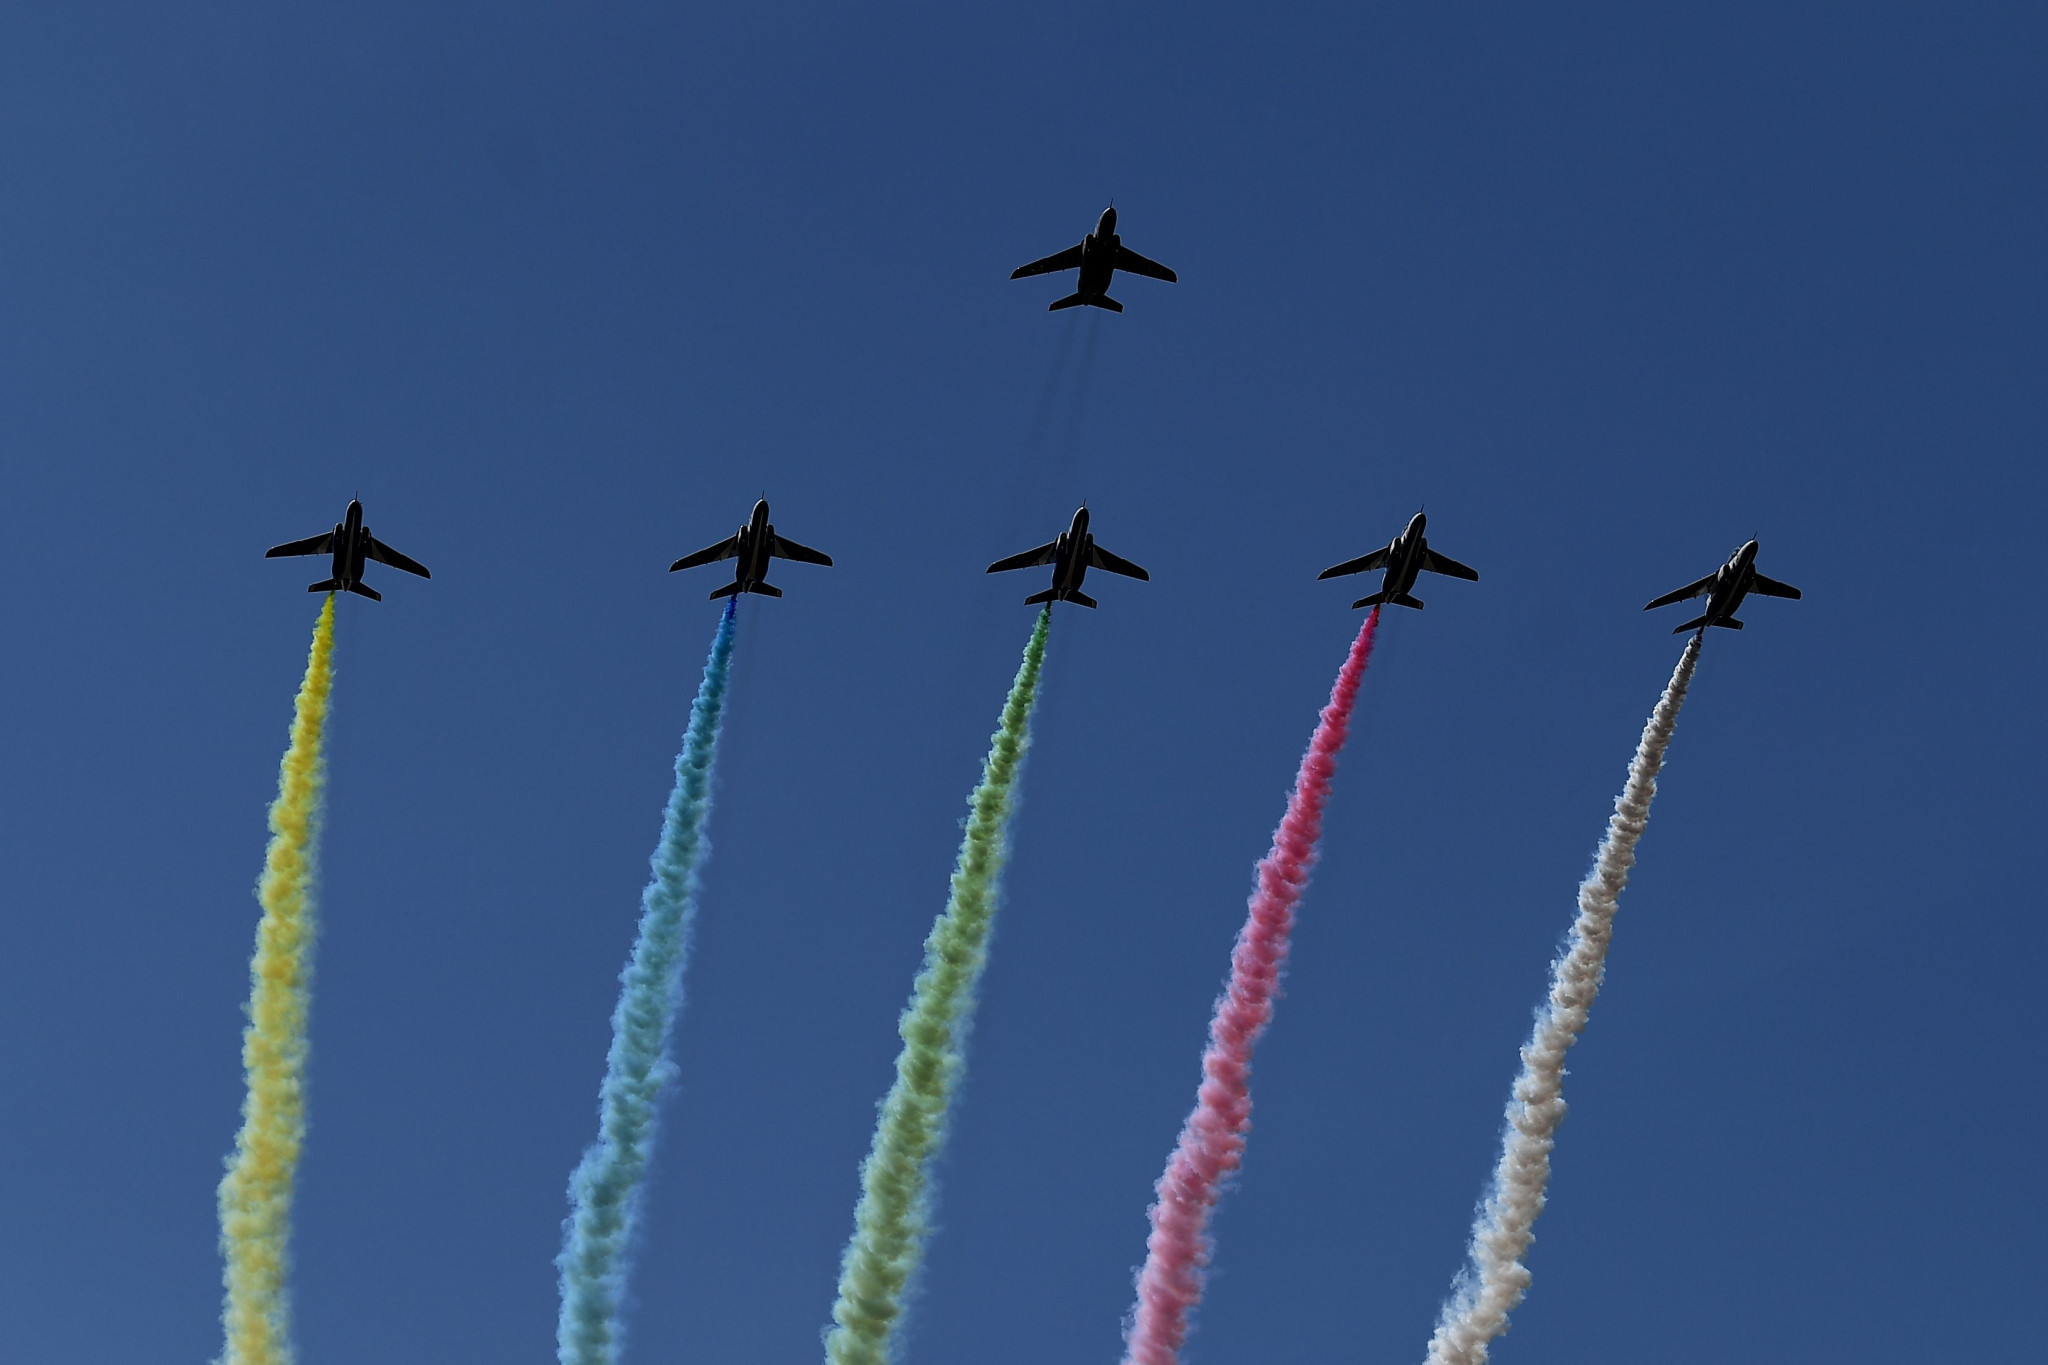 Japan's Blue Impulse team pays homage to the Olympic rings earlier this year - recreating the Opening Ceremony of the 1964 Olympic Games in Tokyo ©Getty Images